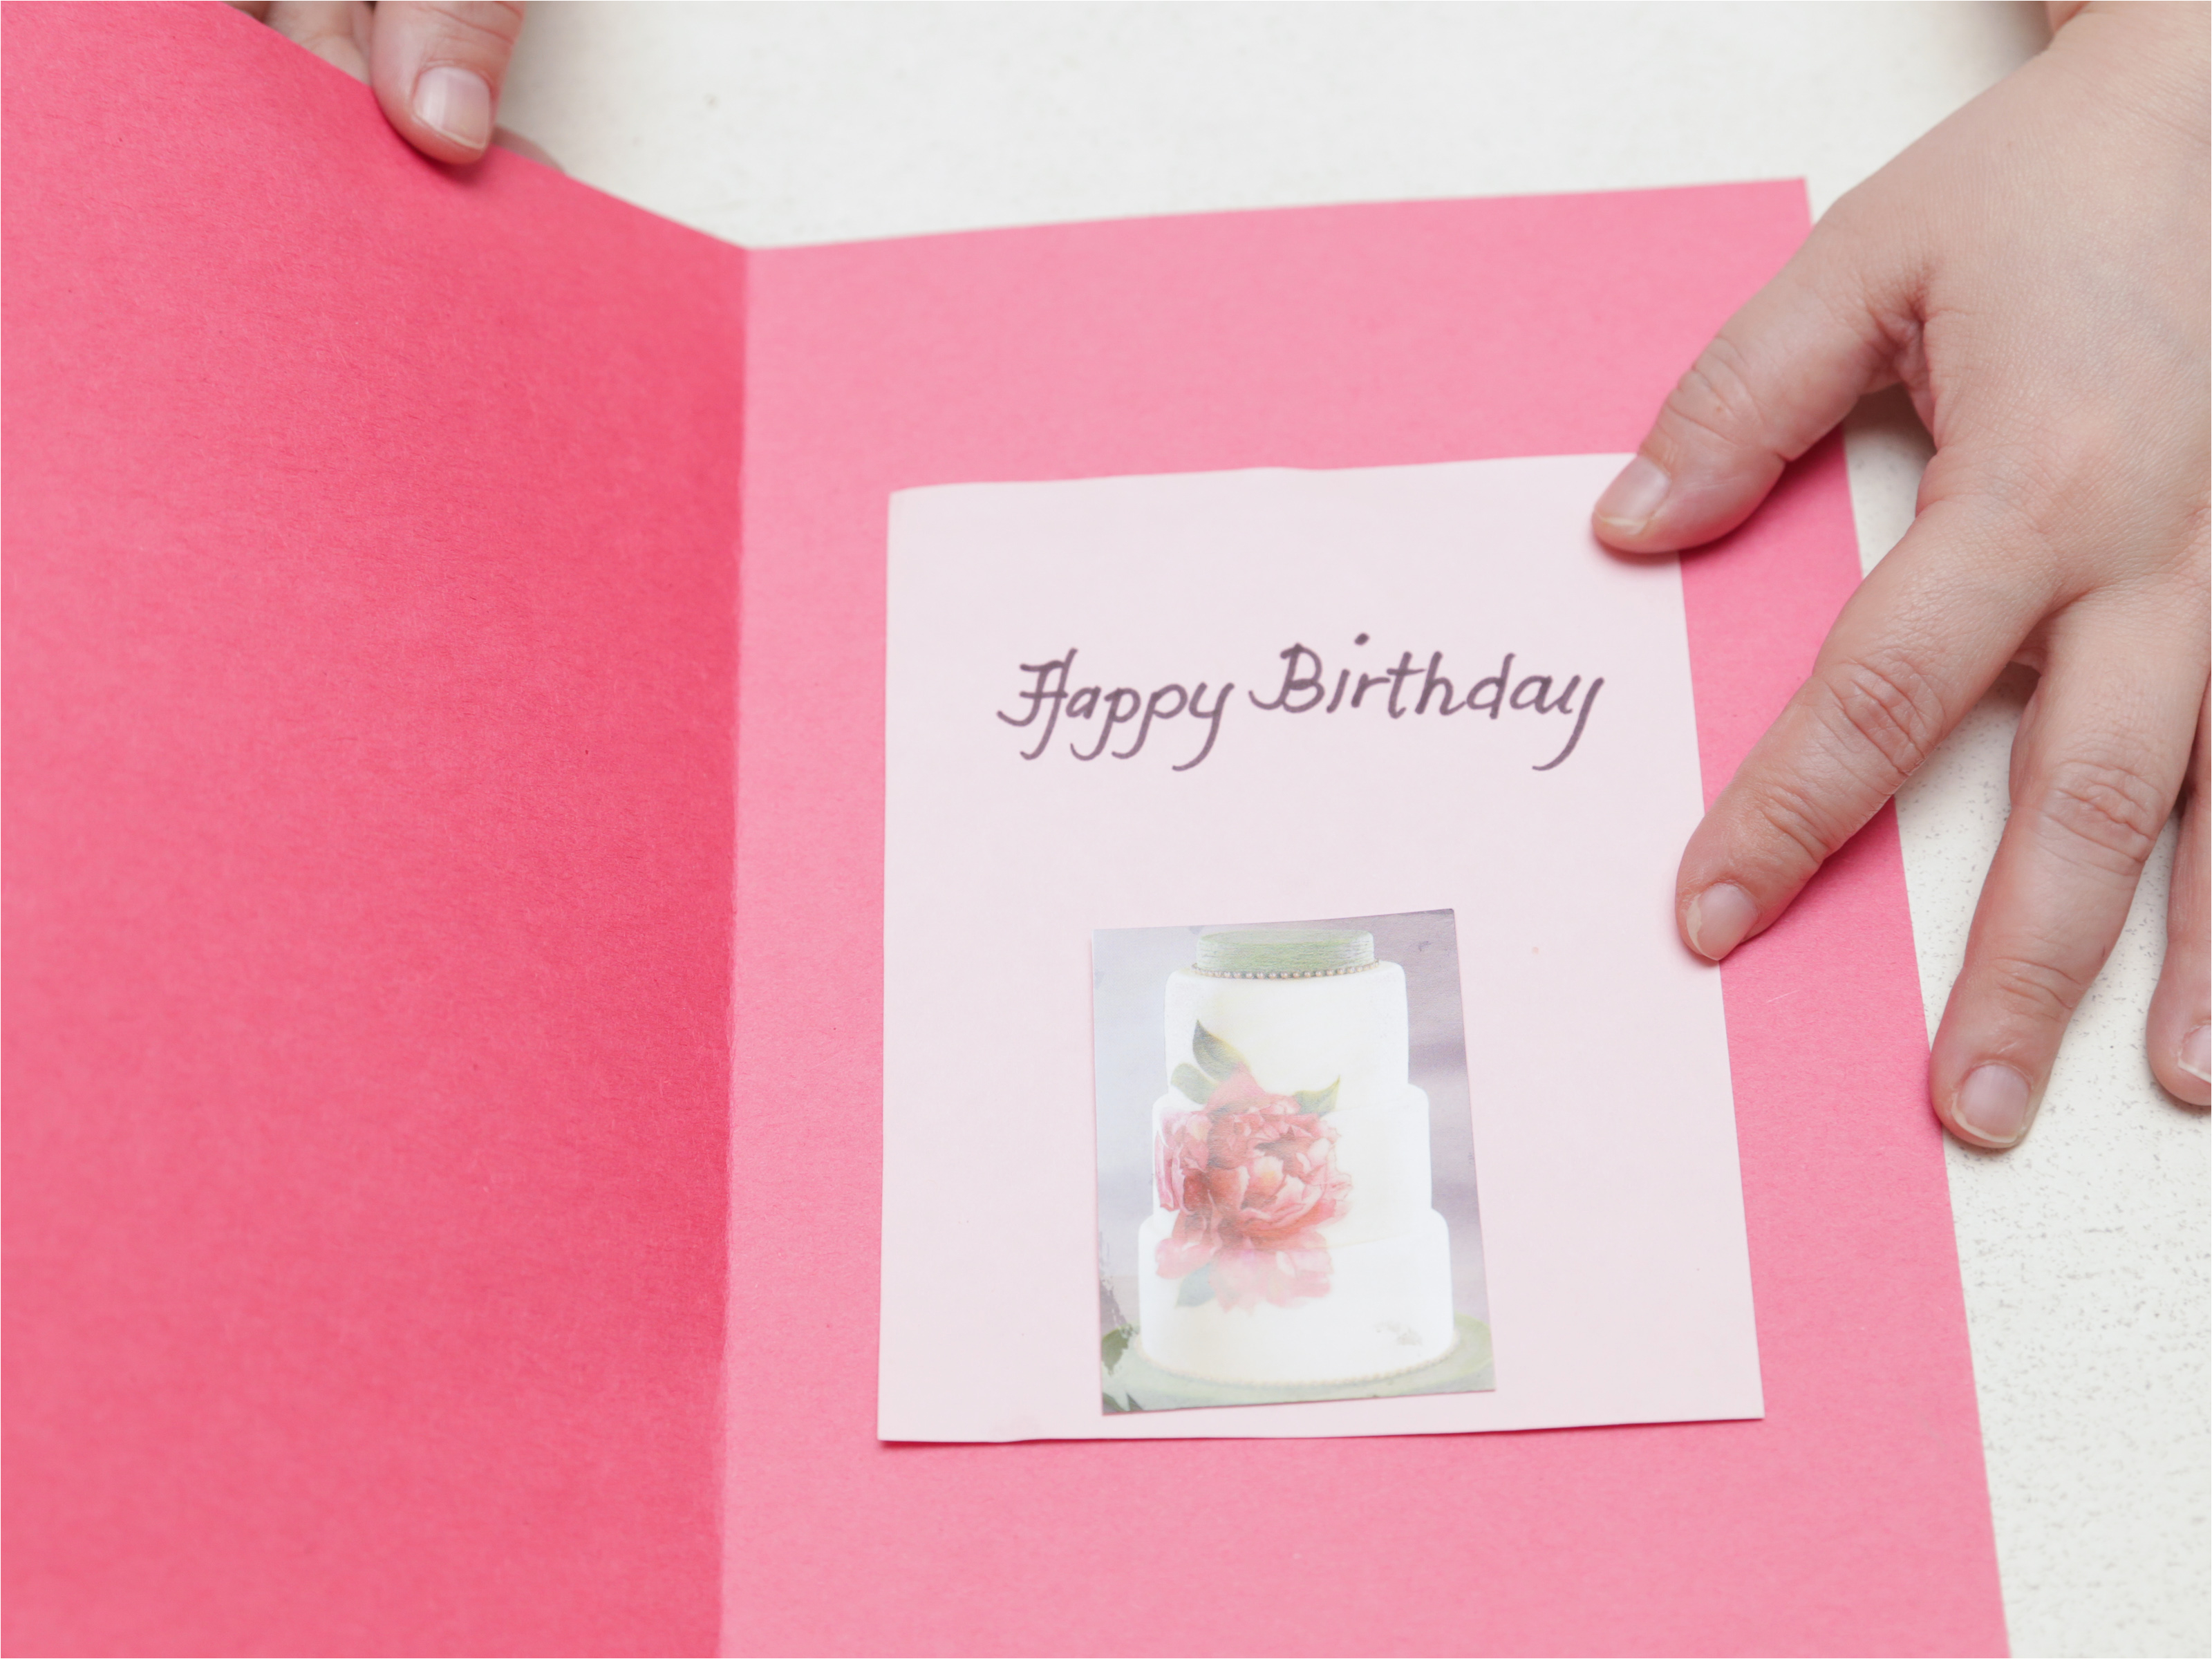 Make A Video Birthday Card 4 Ways To Simple At Home Wikihow